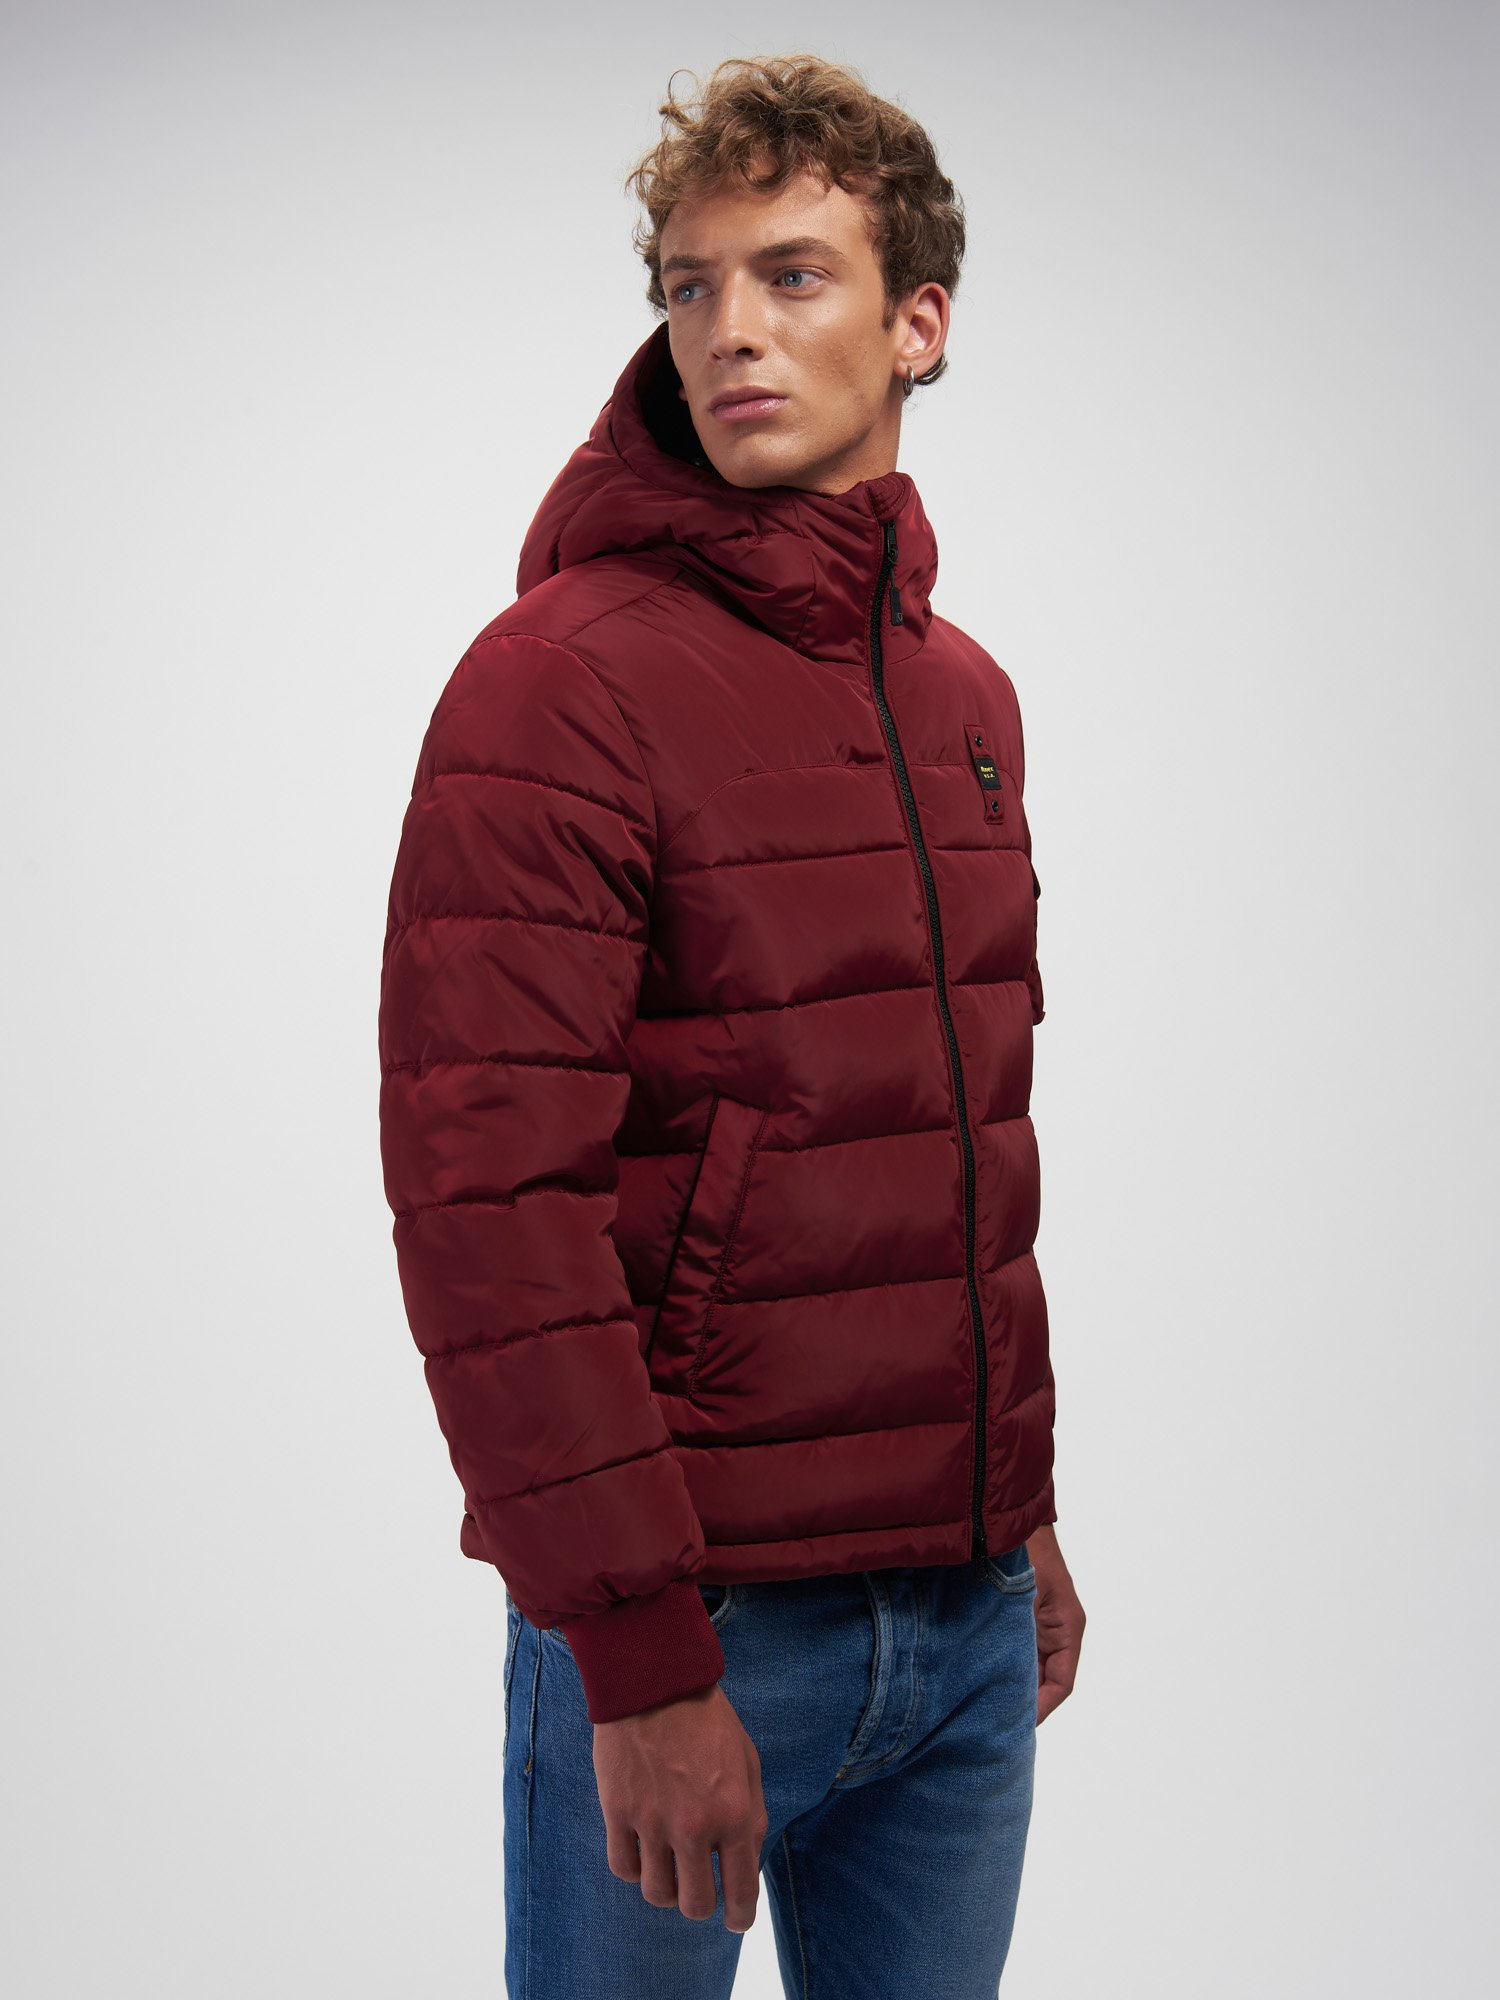 Blauer - RED RECYCLED PADDED JACKET - Chianti Wine - Blauer